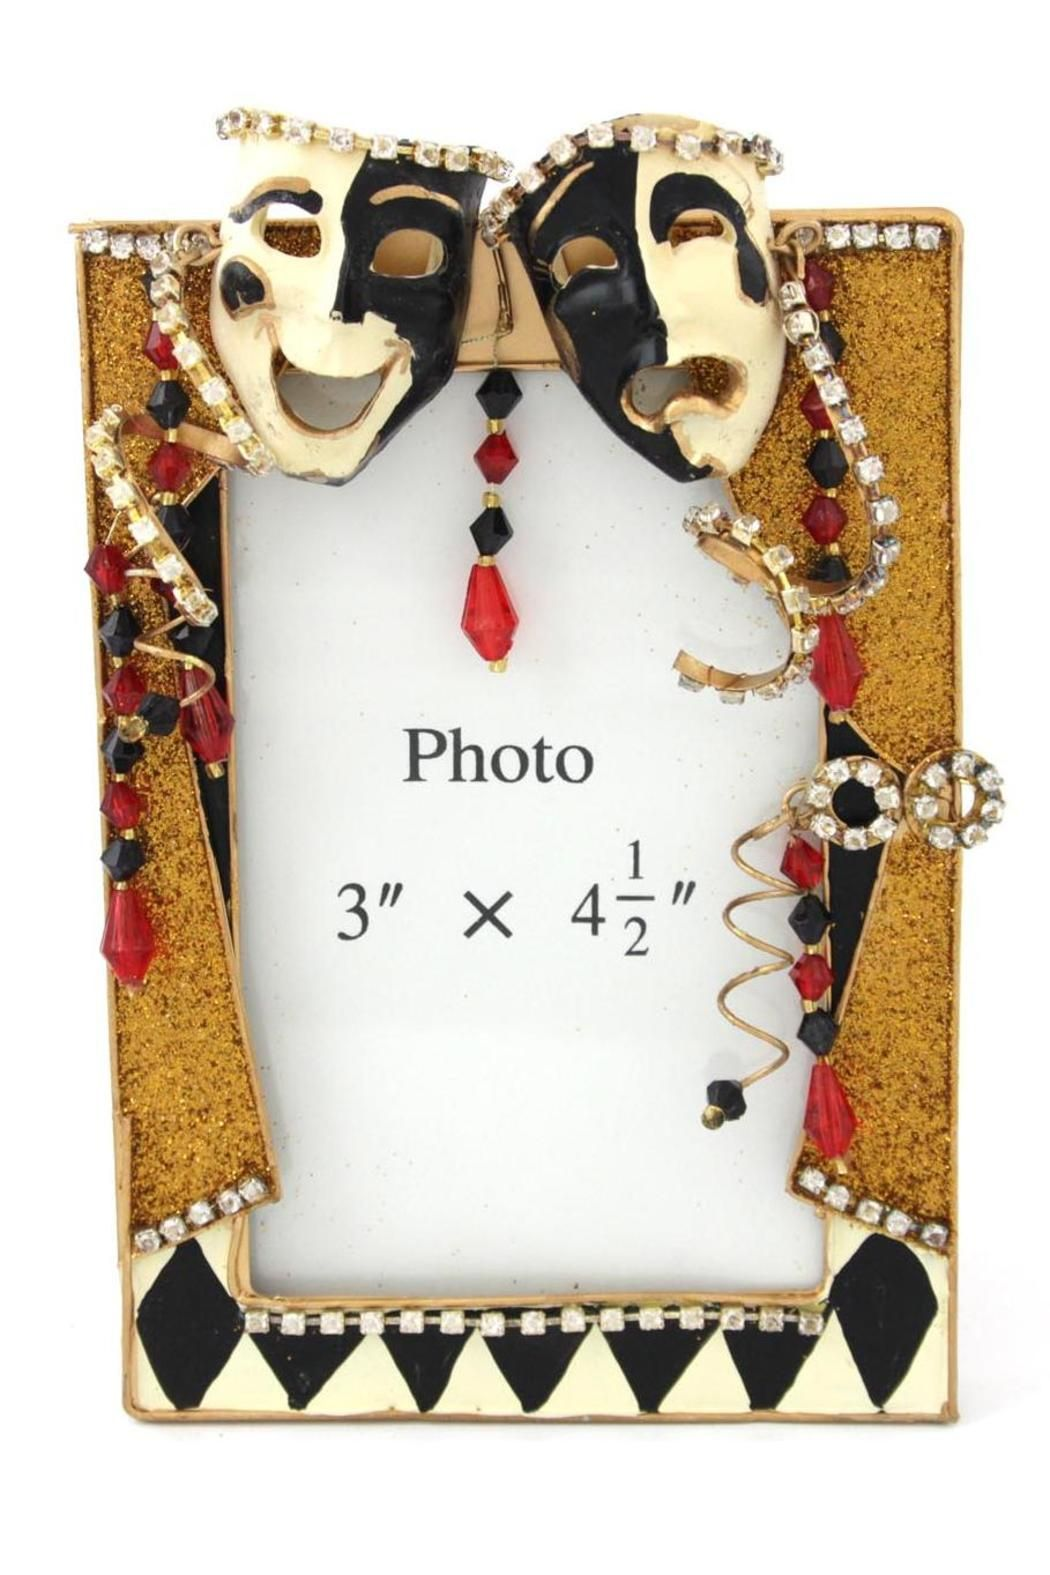 """Mardi Gras Harlequin frame Stage setting. Glitter, beads, & rhinestone accents.Texture differences which may appear on this handcrafted item are inherent to the natural materials and artistic manufacturing process.    Measures: 7"""" x 4.5""""; fits a 3"""" x 4.5"""" photo   Comedy & Tragedy Frame by Katherine's Collection. Home & Gifts - Home Decor - Frames Alabama"""